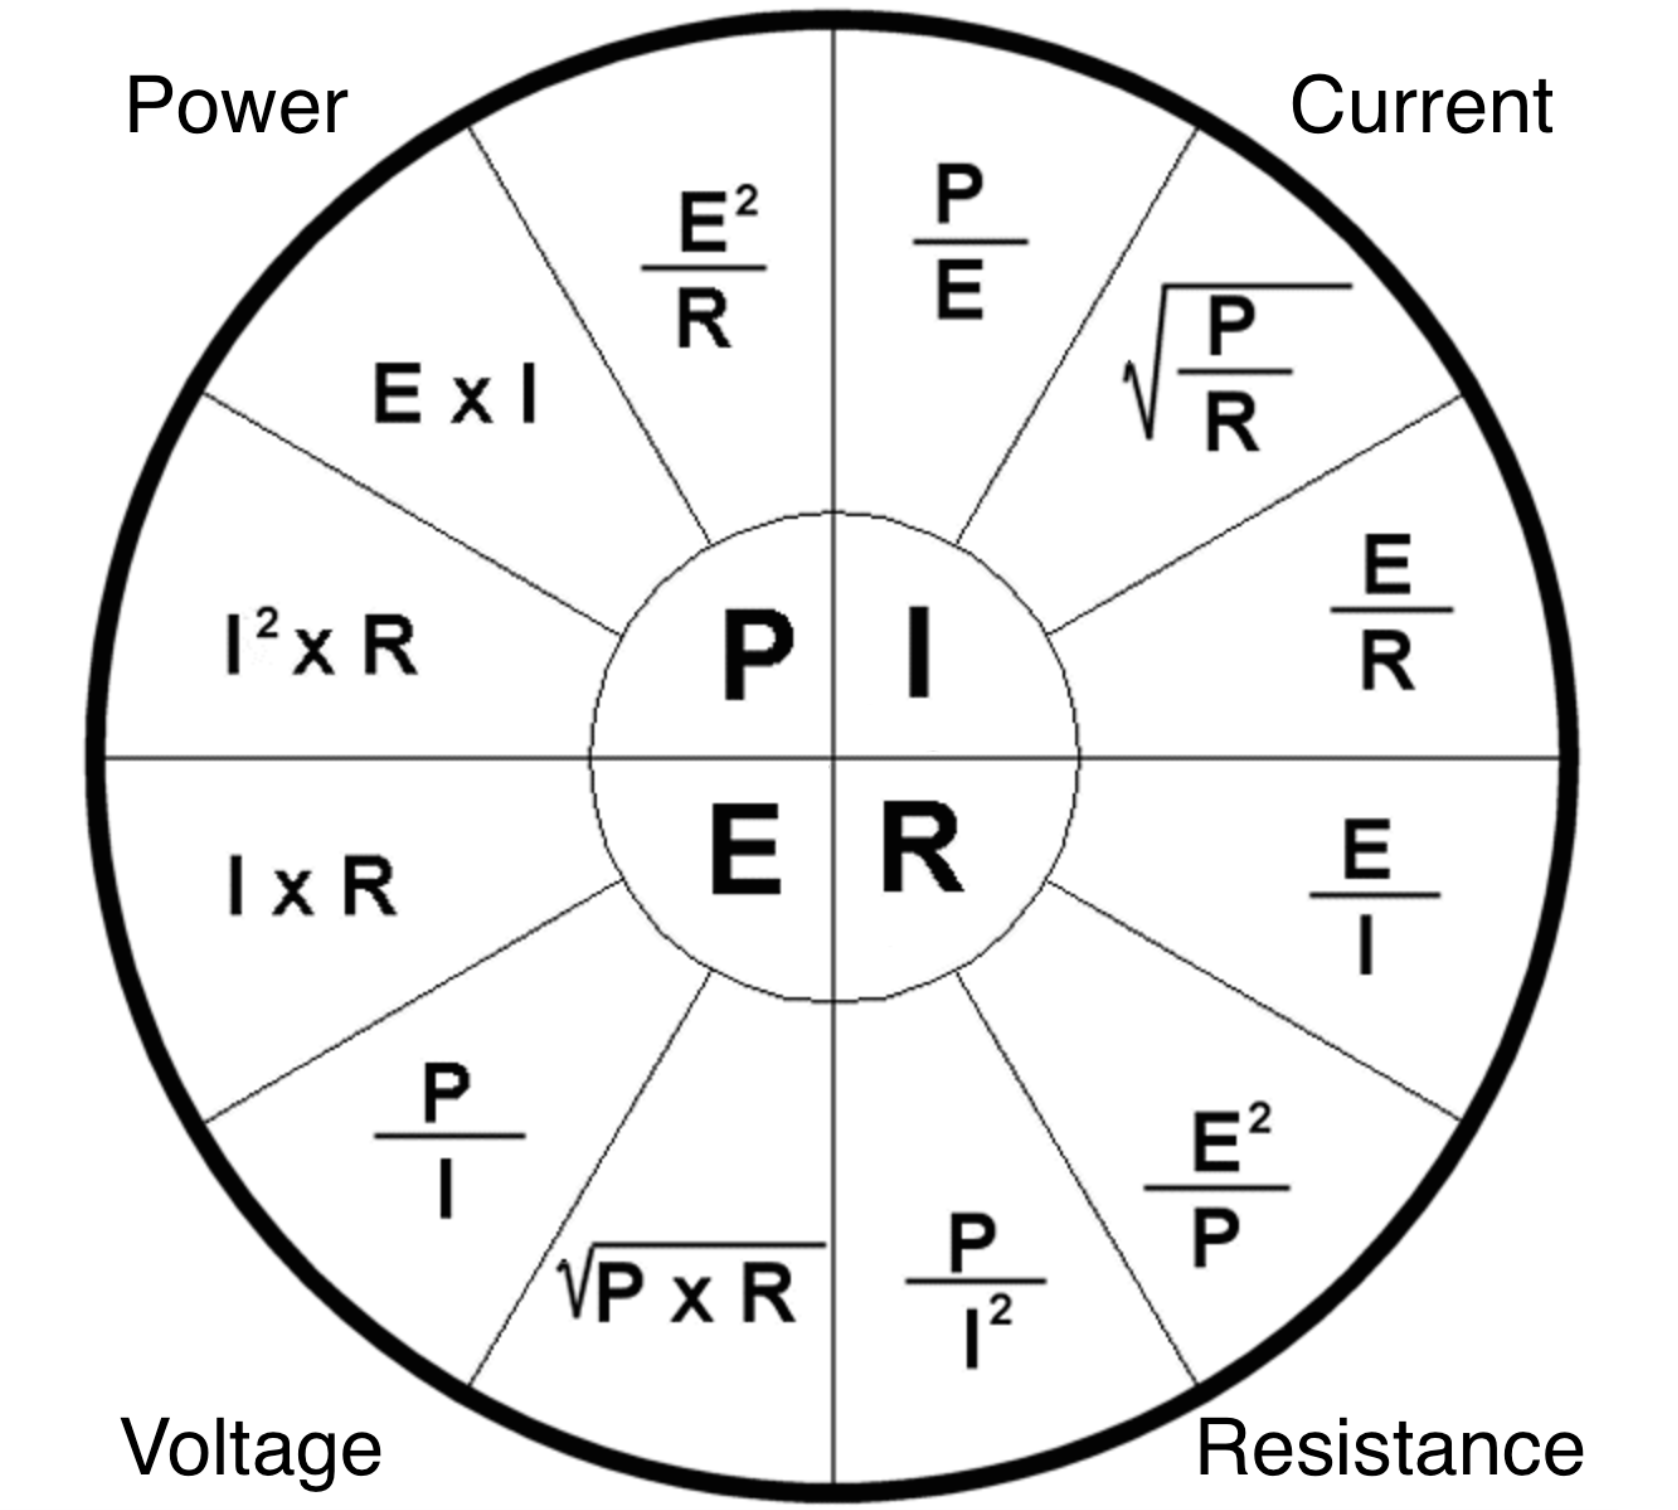 Chart showing all the formulas to find volts, watts, amps, and ohms using the Ohm's Law and Watt's Law